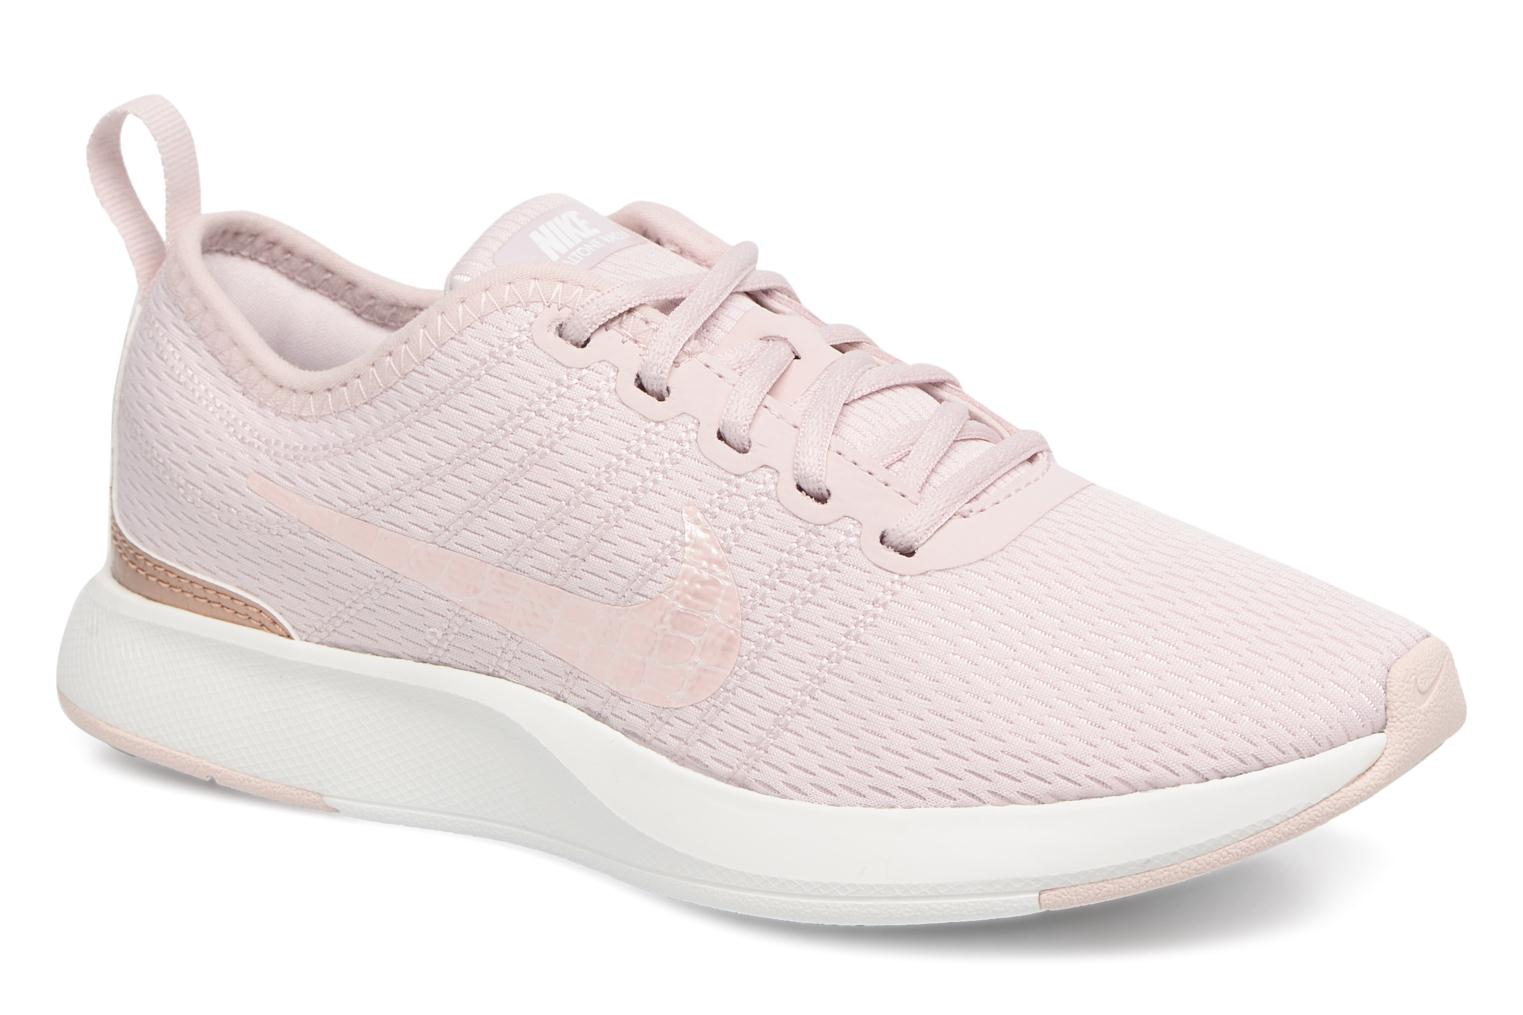 Nike Barely Red Racer Barely Dualtone Ps Rose Bronze Rose Nike Mtlc rUqW67Y1r